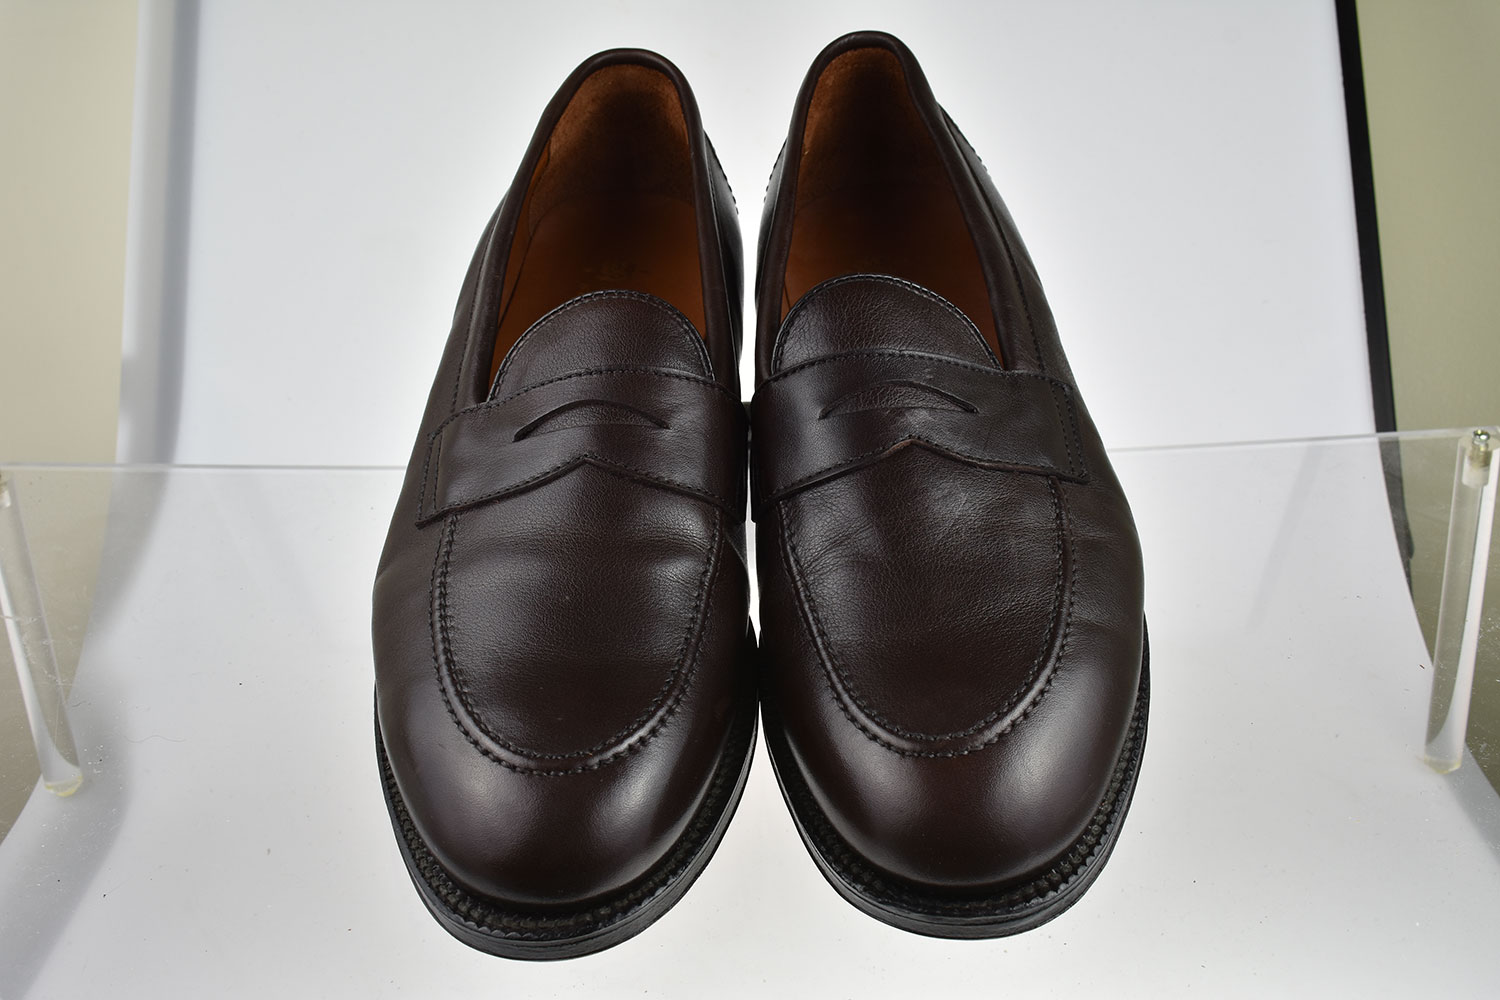 c92075a9bb5 ... Picture 2 of 3  Picture 3 of 3. Alden Men s Shoes Flex Welt Penny Loafer